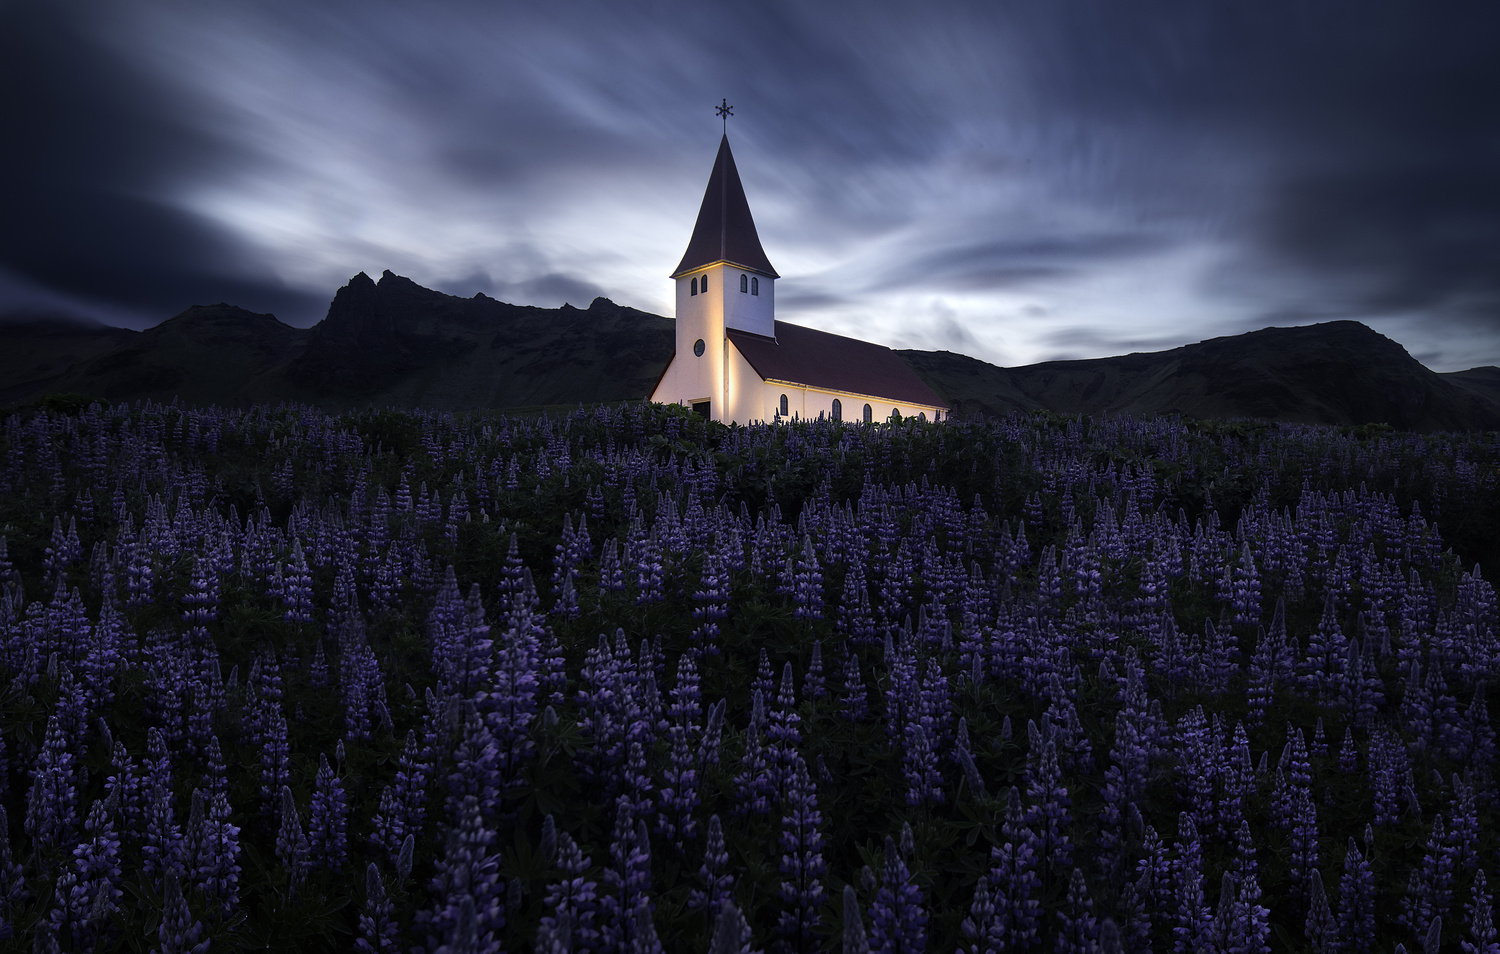 That Church by Micah Roemmling